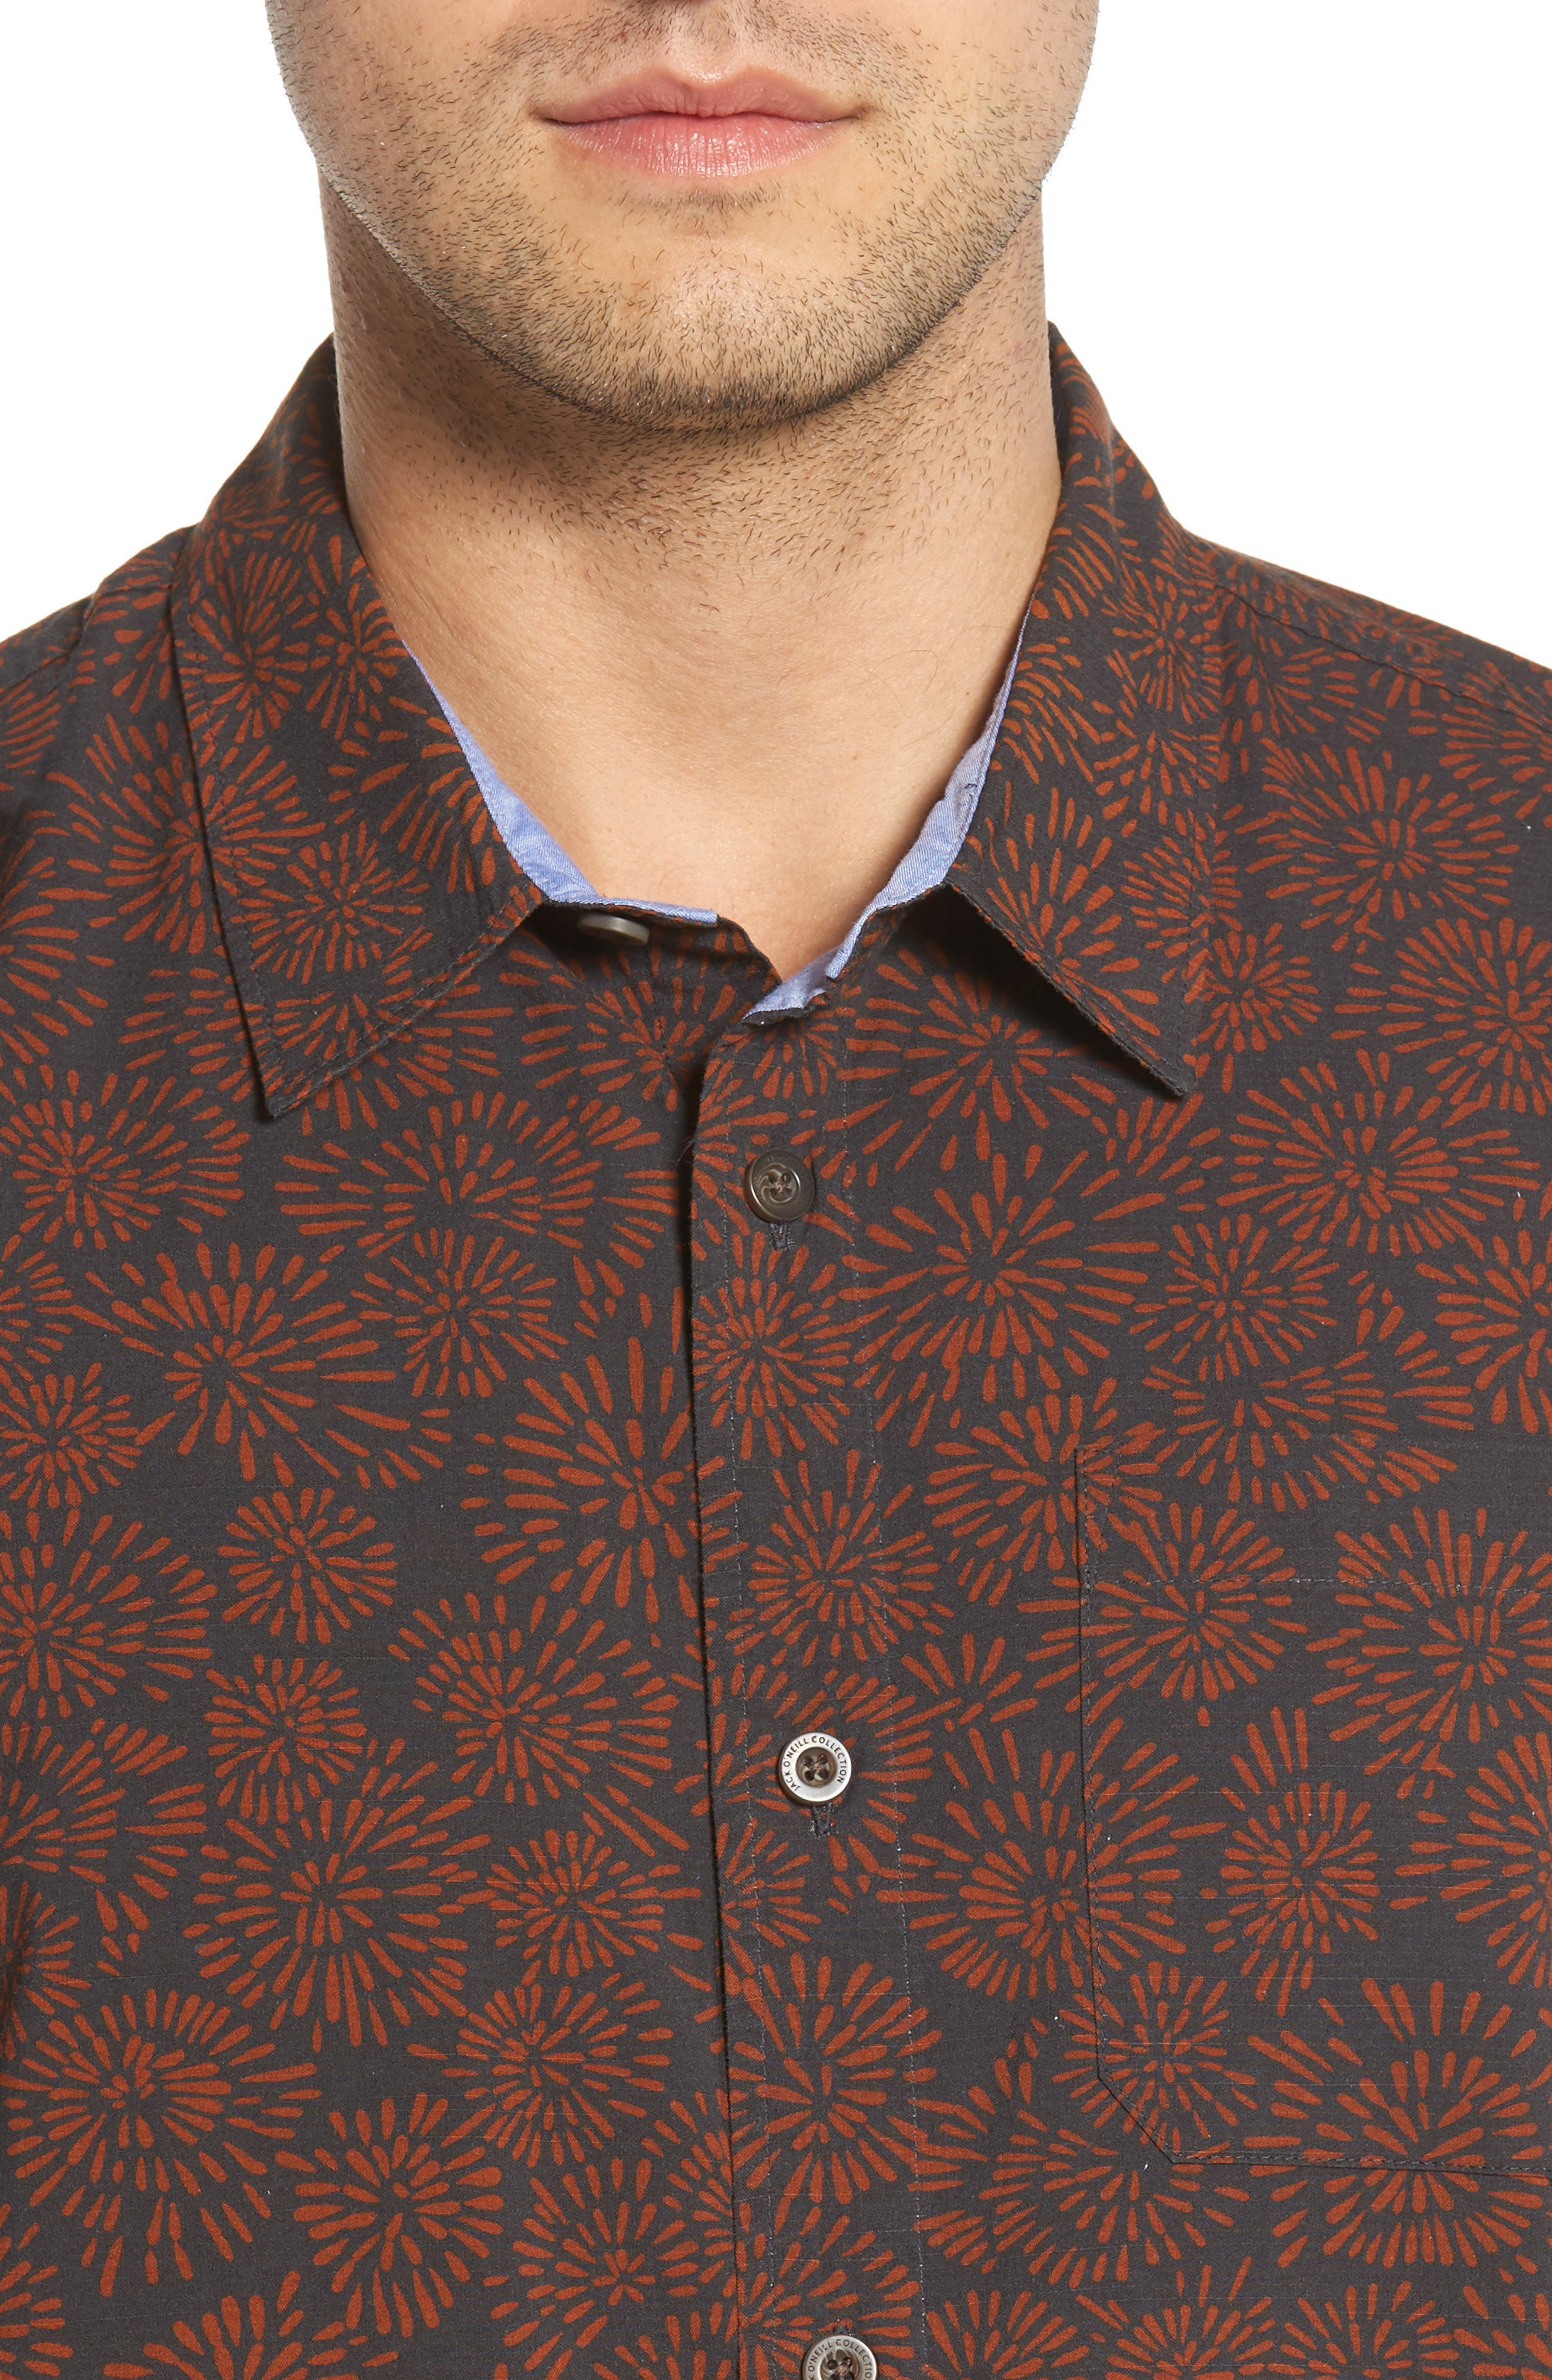 Upland Print Sport Shirt,                             Alternate thumbnail 4, color,                             020